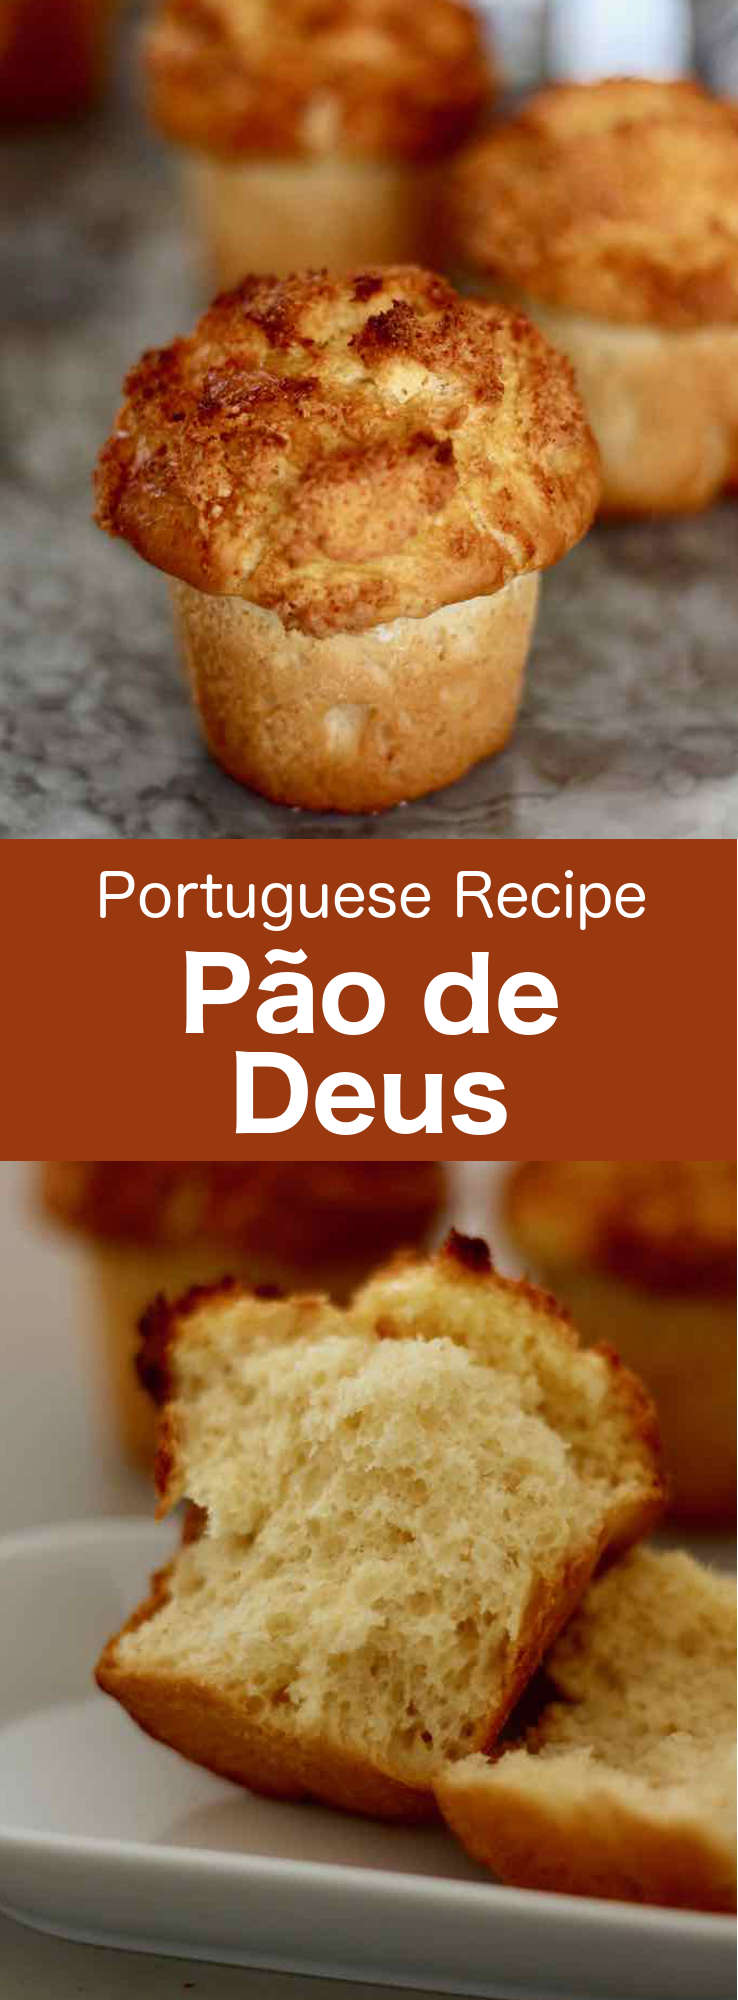 Pão de deus, also known as estaladinho or arrufada, is a typical Portuguese bun with a grated coconut-based cream prepared with eggs and sugar. It is perfect for breakfast, as well as for a sweet or savory snack. #Portugal #PortugueseRecipe #PortugueseBread #BreadRecipe #Bread #Bun #DiaDoBolinho #BunRecipe #WorldCuisine #196flavors